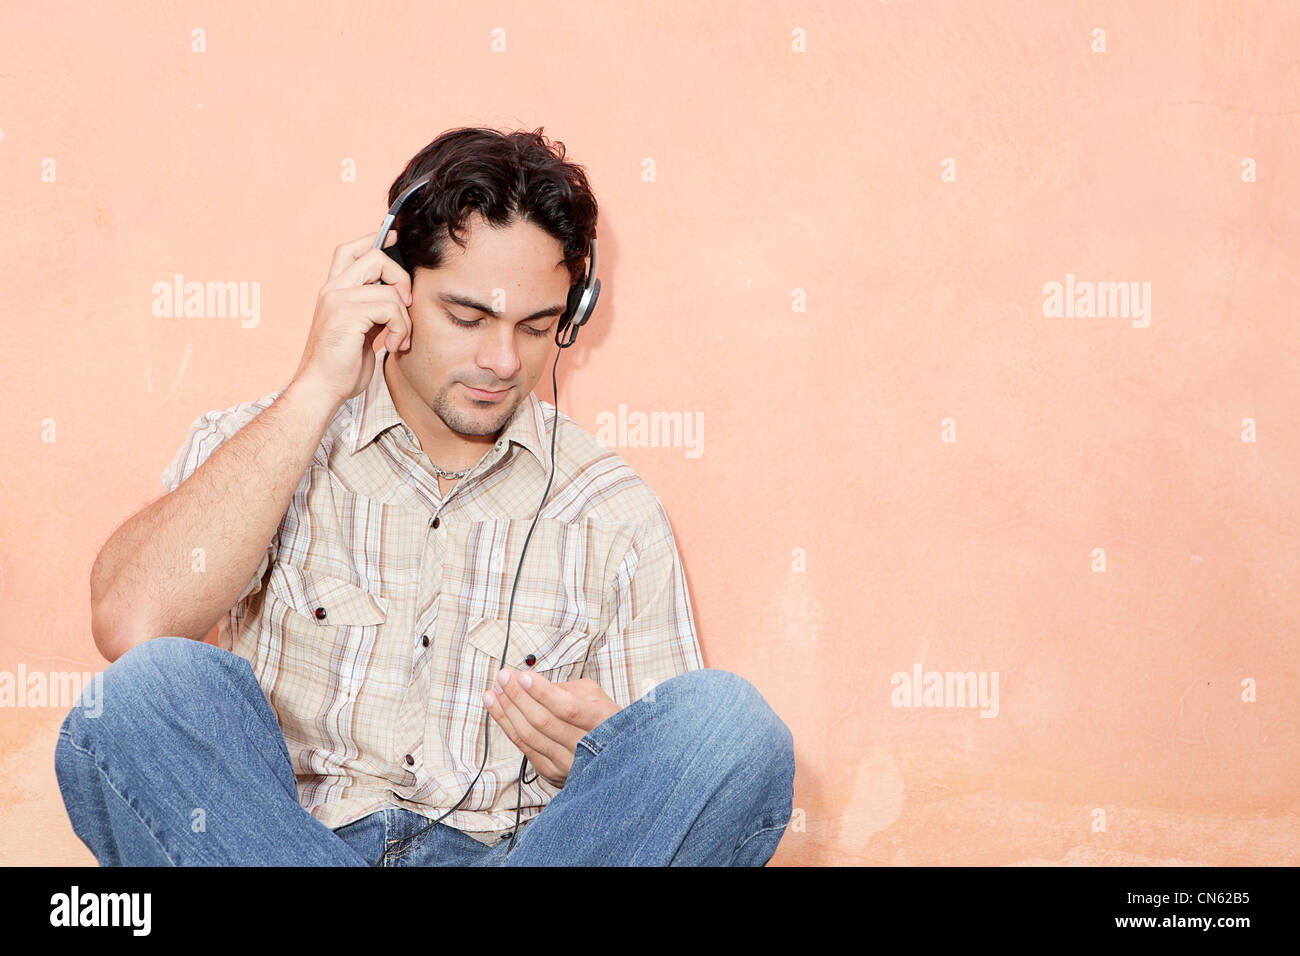 man listening to music with earphones and personal stereo - Stock Image